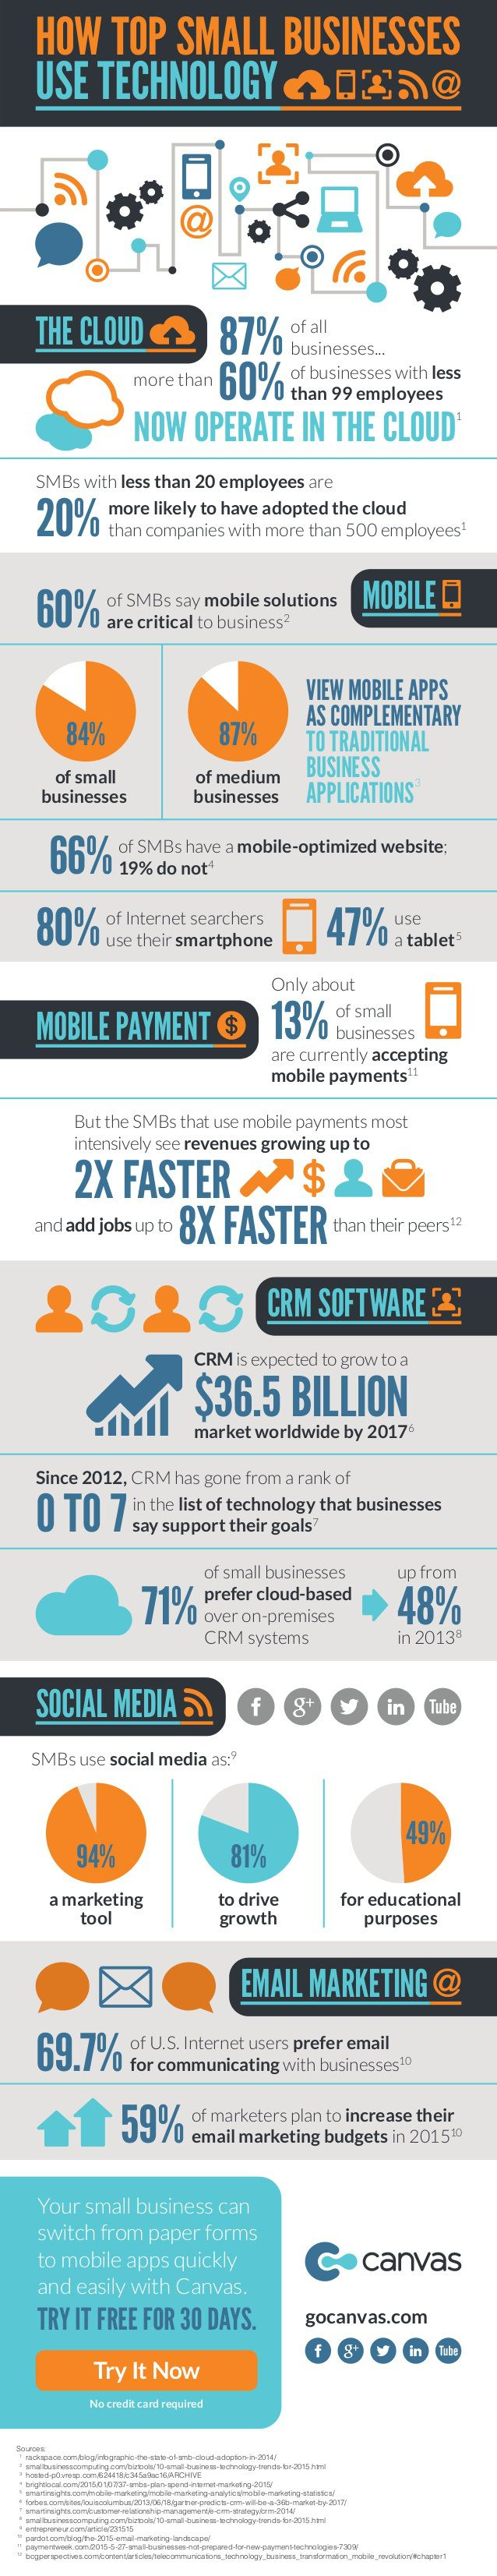 How to small business use technology #INFOGRAPHIC #TECH